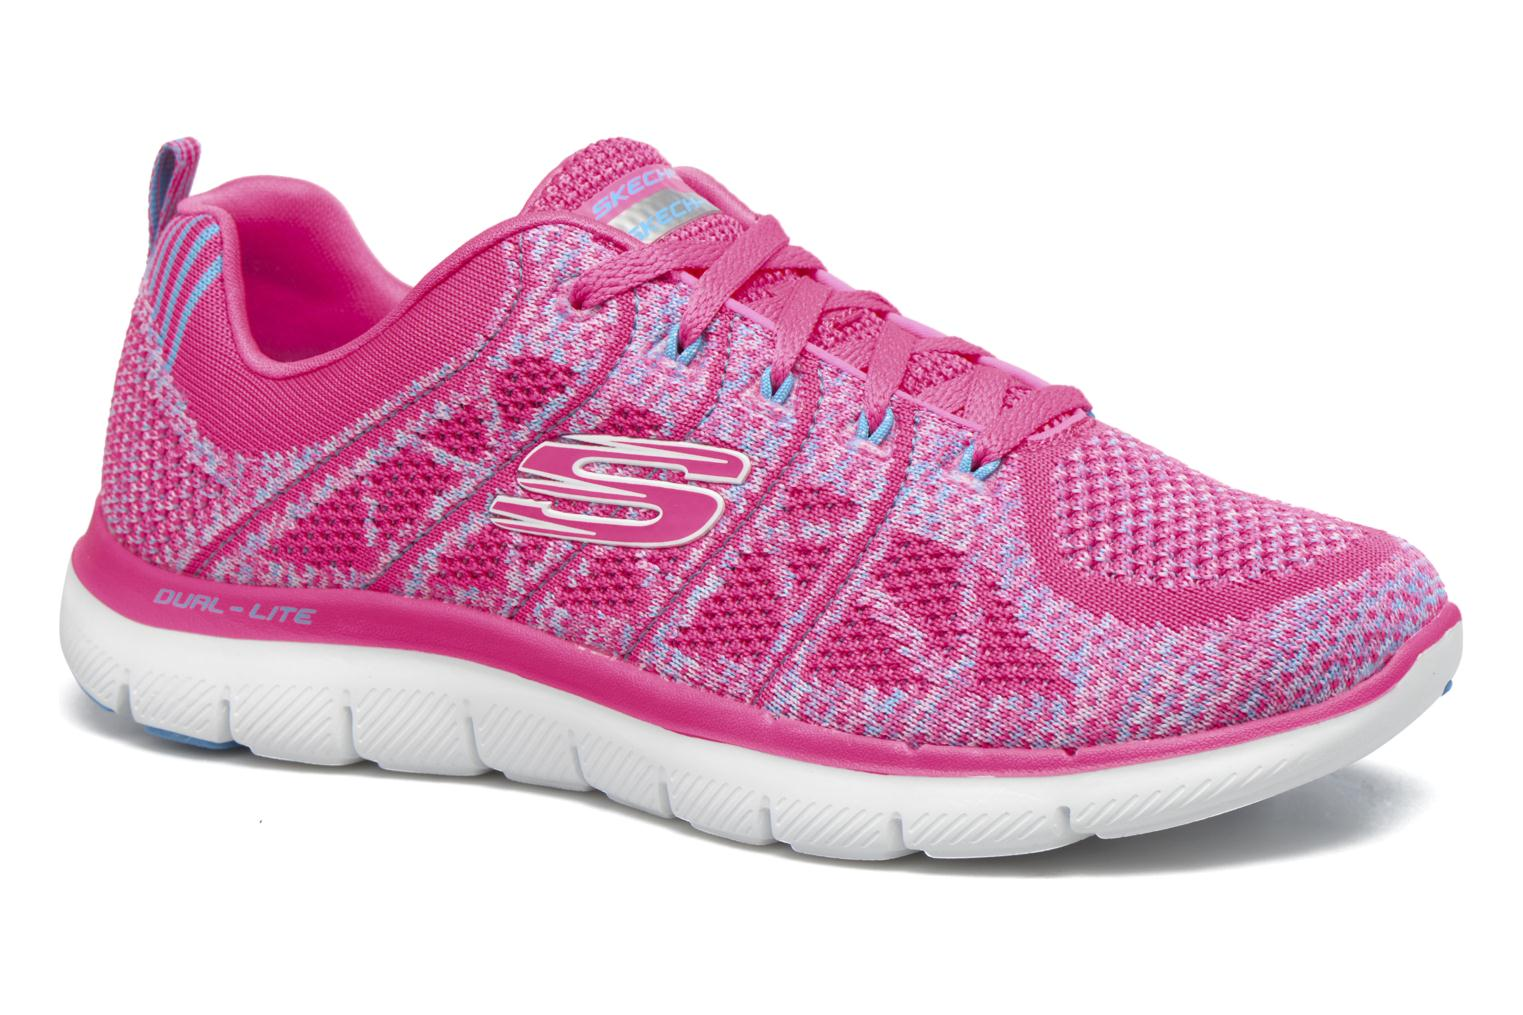 Zapatillas de deporte Skechers Flex Appeal 2.0 New Gem Rosa vista de detalle / par